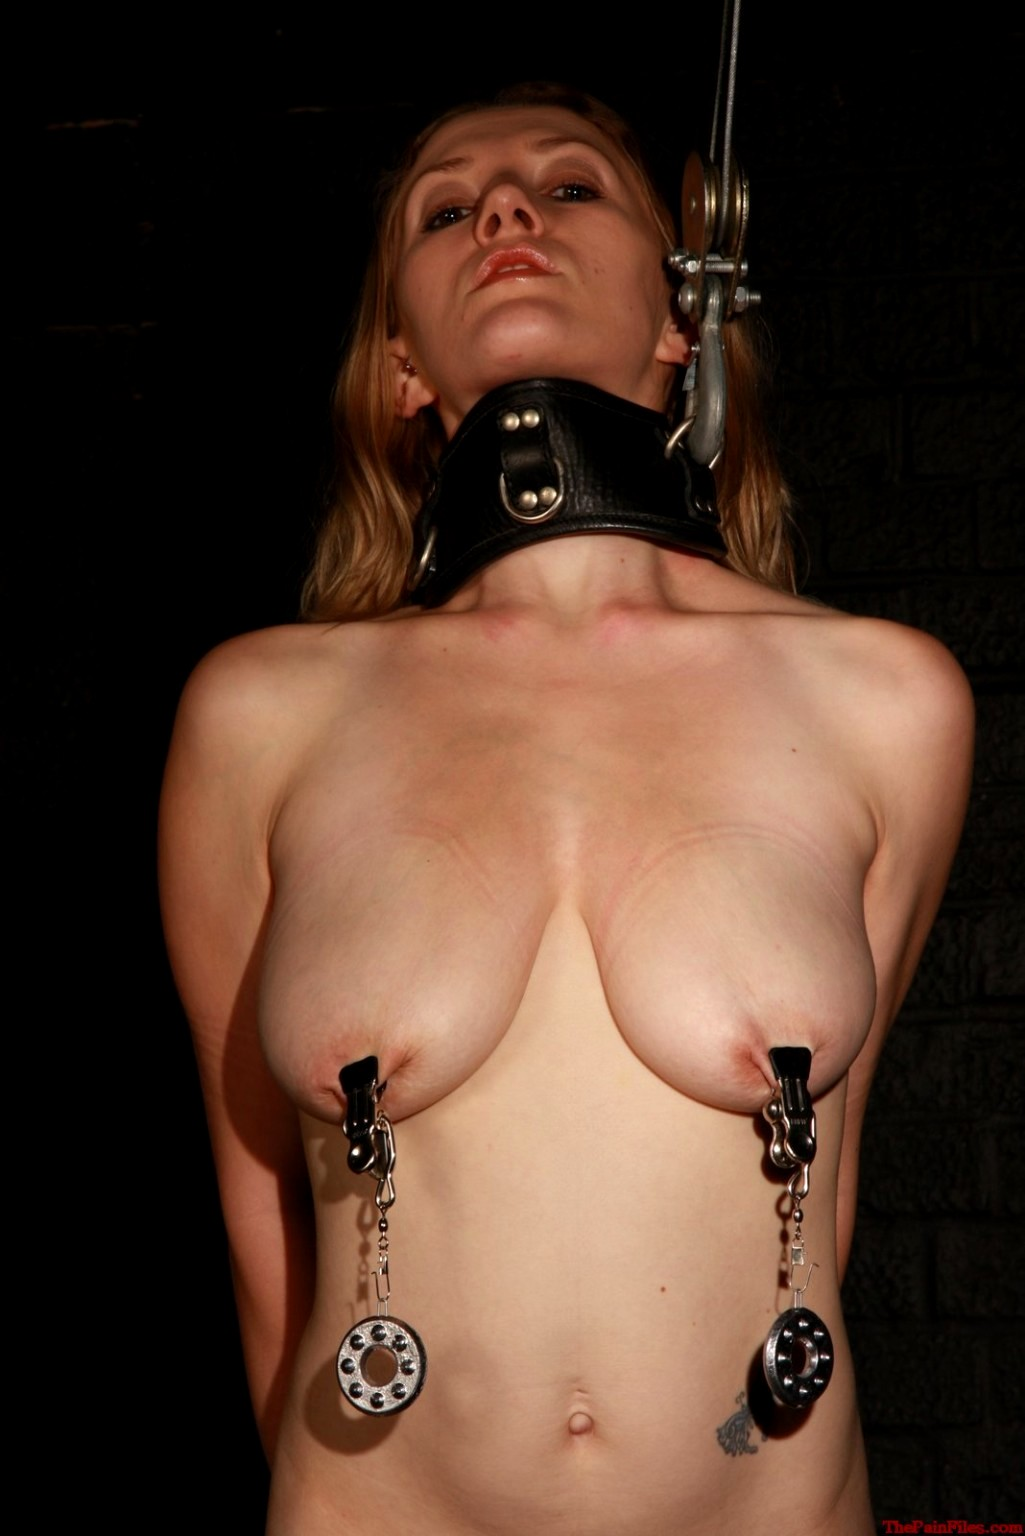 Stainless steel labia clip bondage, weighted ringed clover style nipple clamps with weights, adult toys